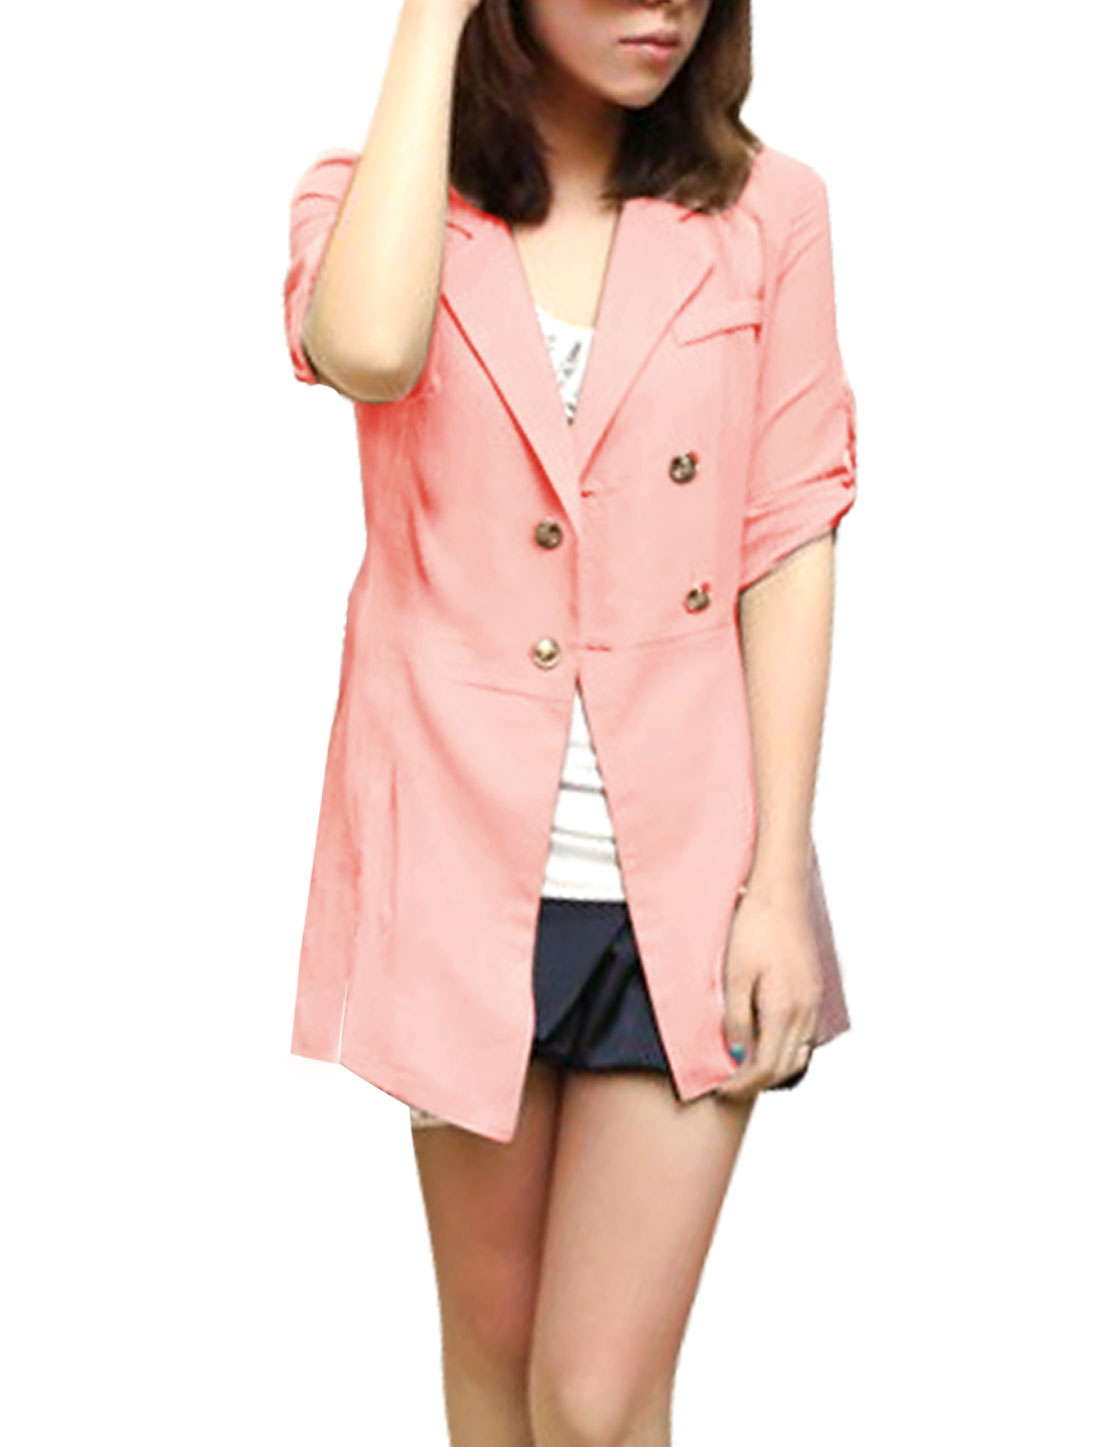 Button Closure Peaked Lapel Collar Pink Trench Shirt M for Lady